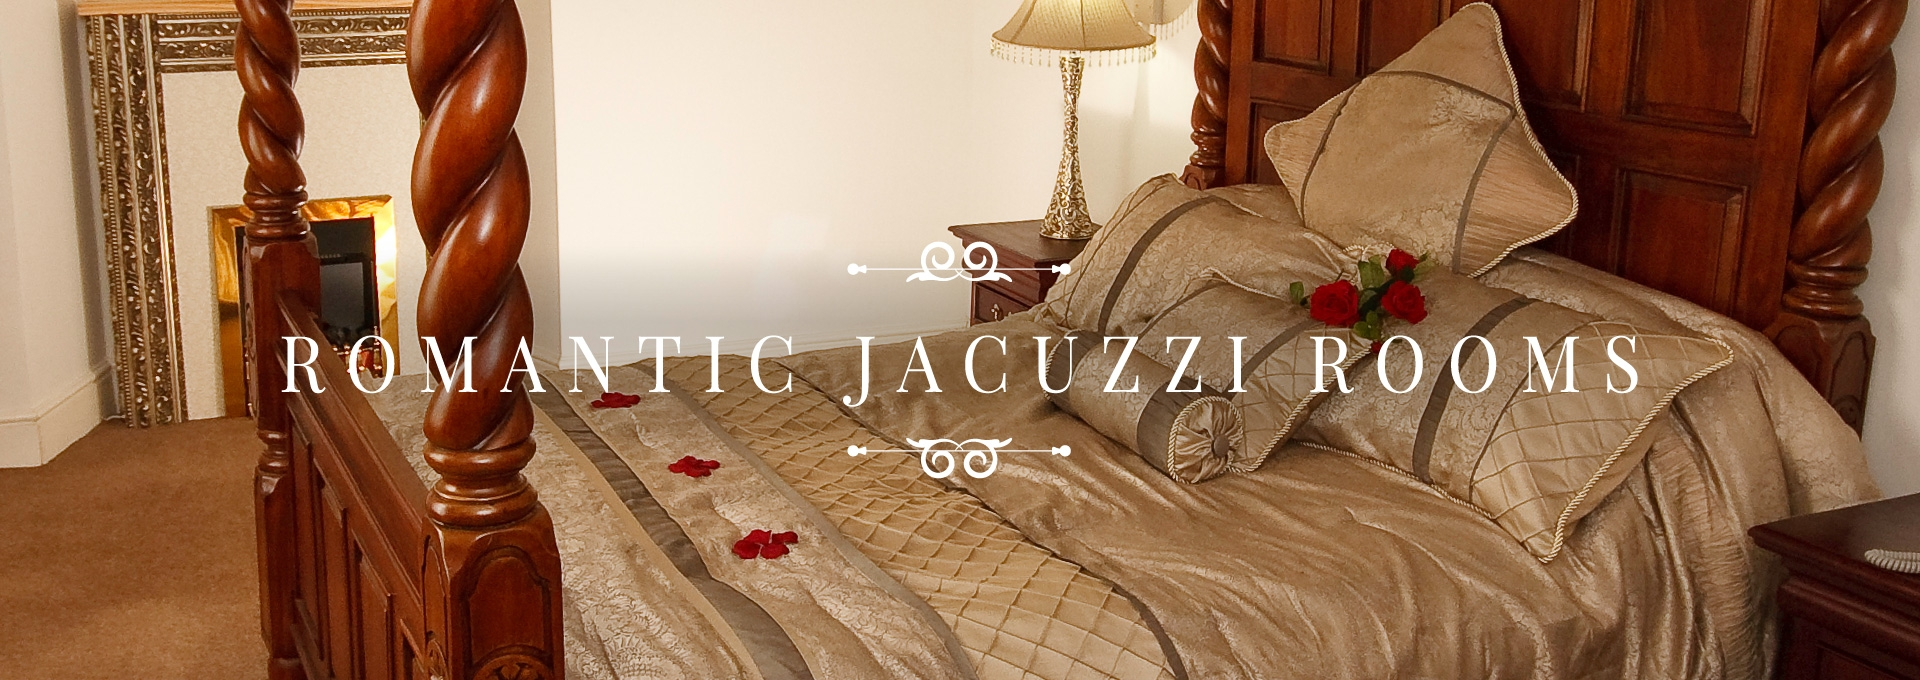 Romantic Jacuzzi Rooms at the Durrant House Hotel Bideford